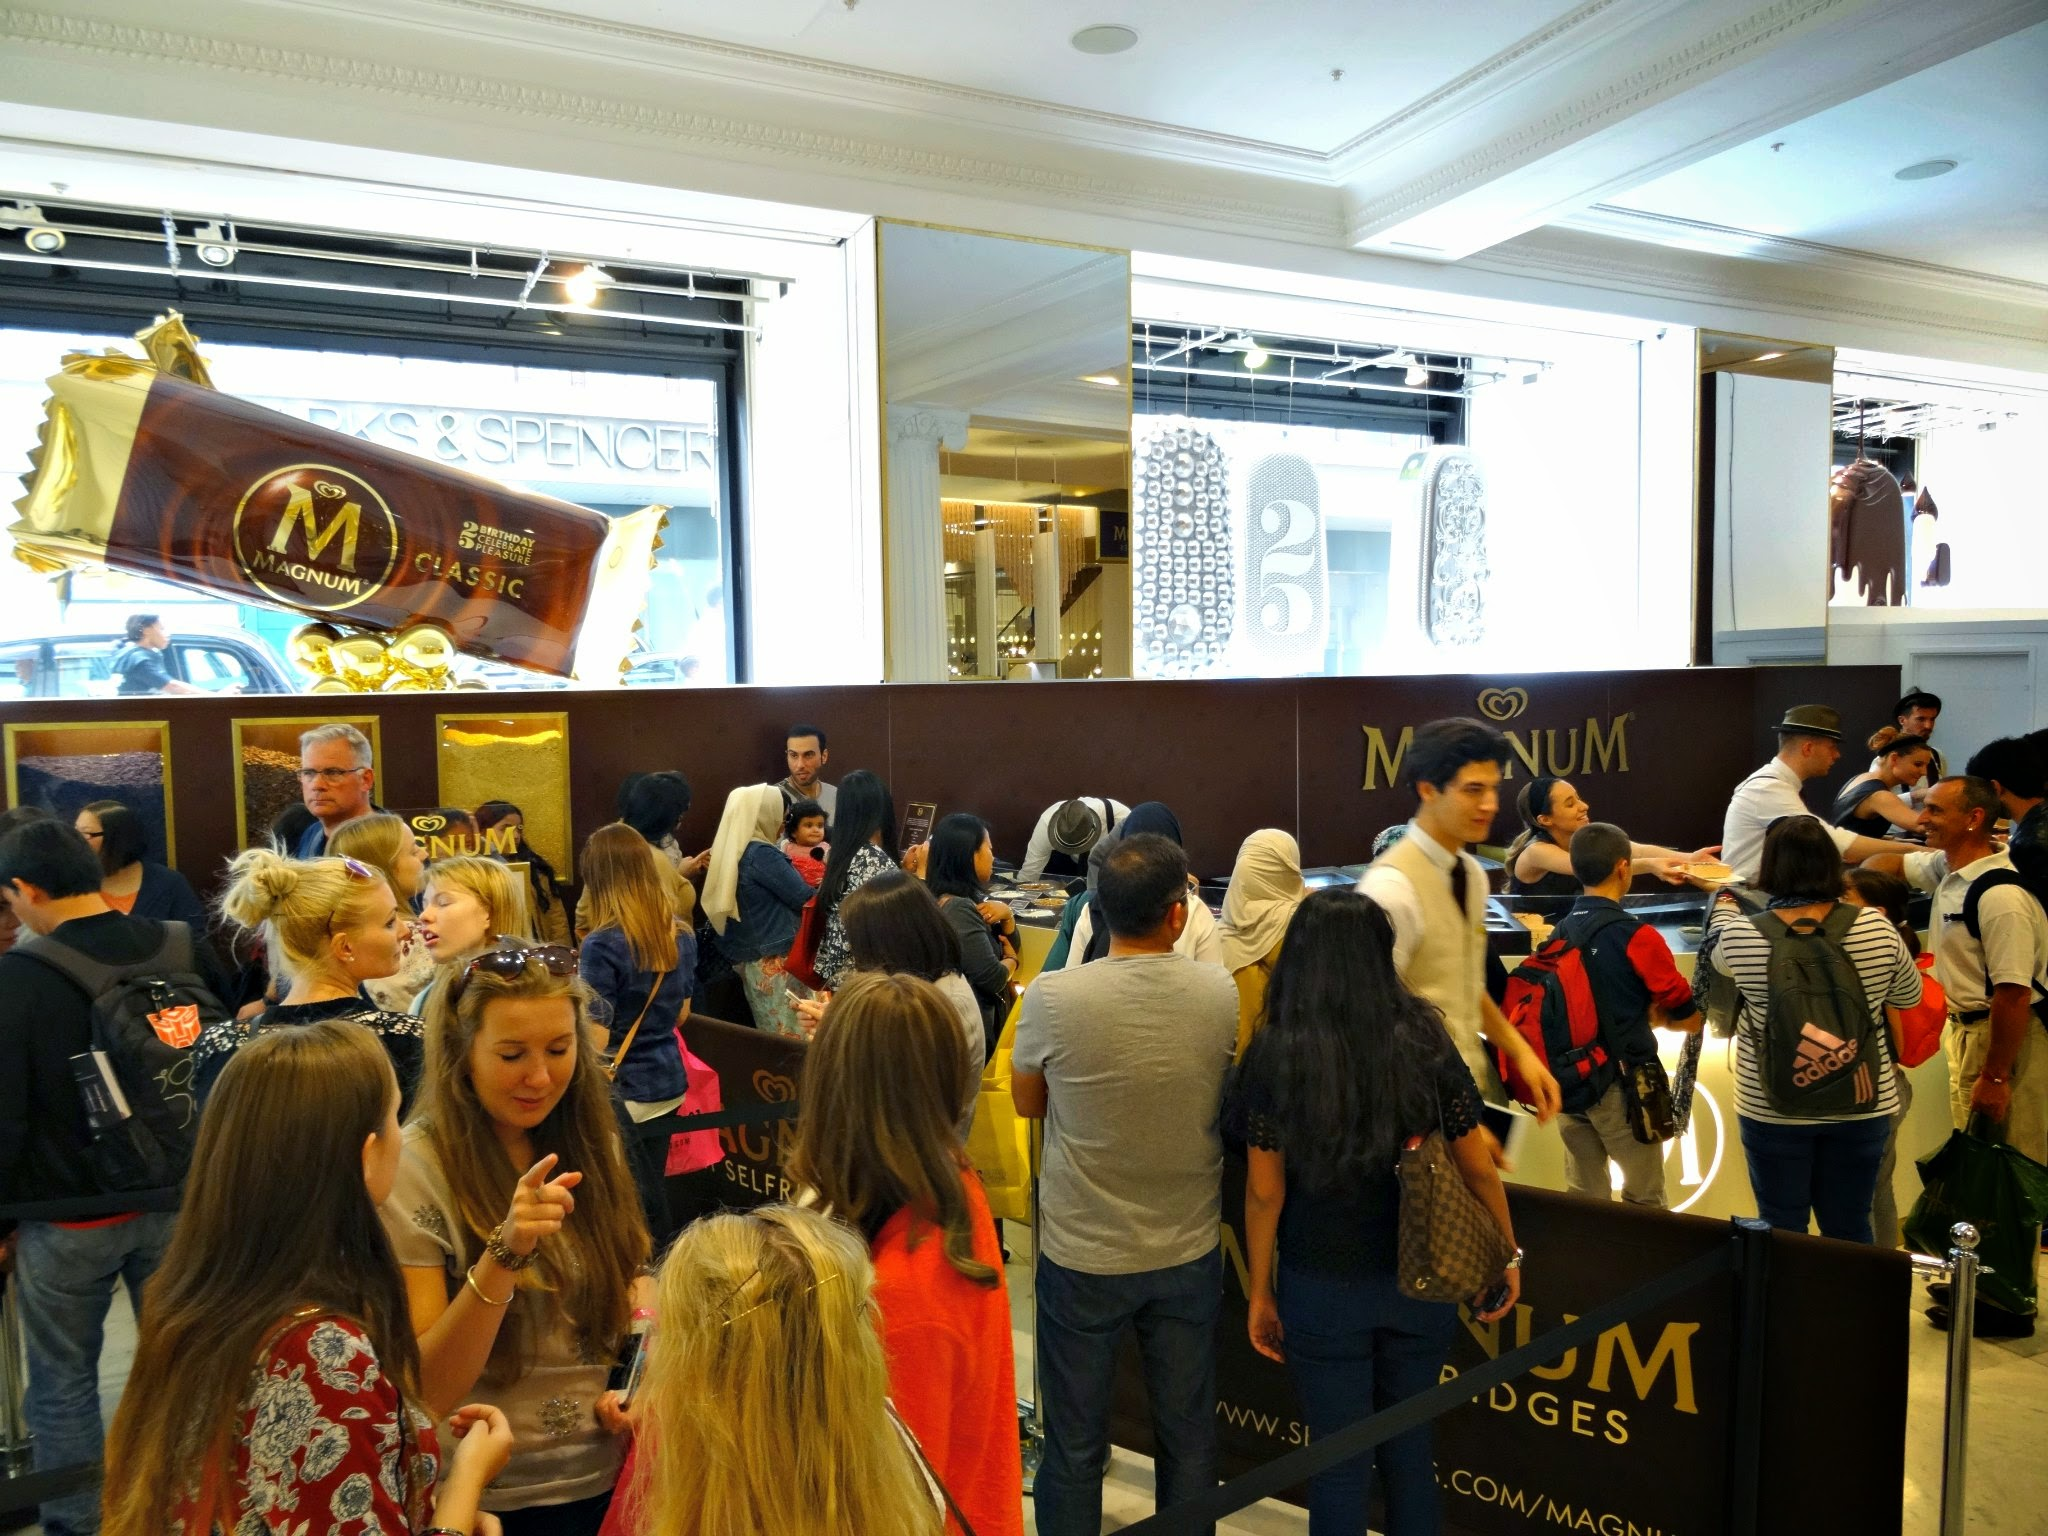 Magnum experience at selfridges London